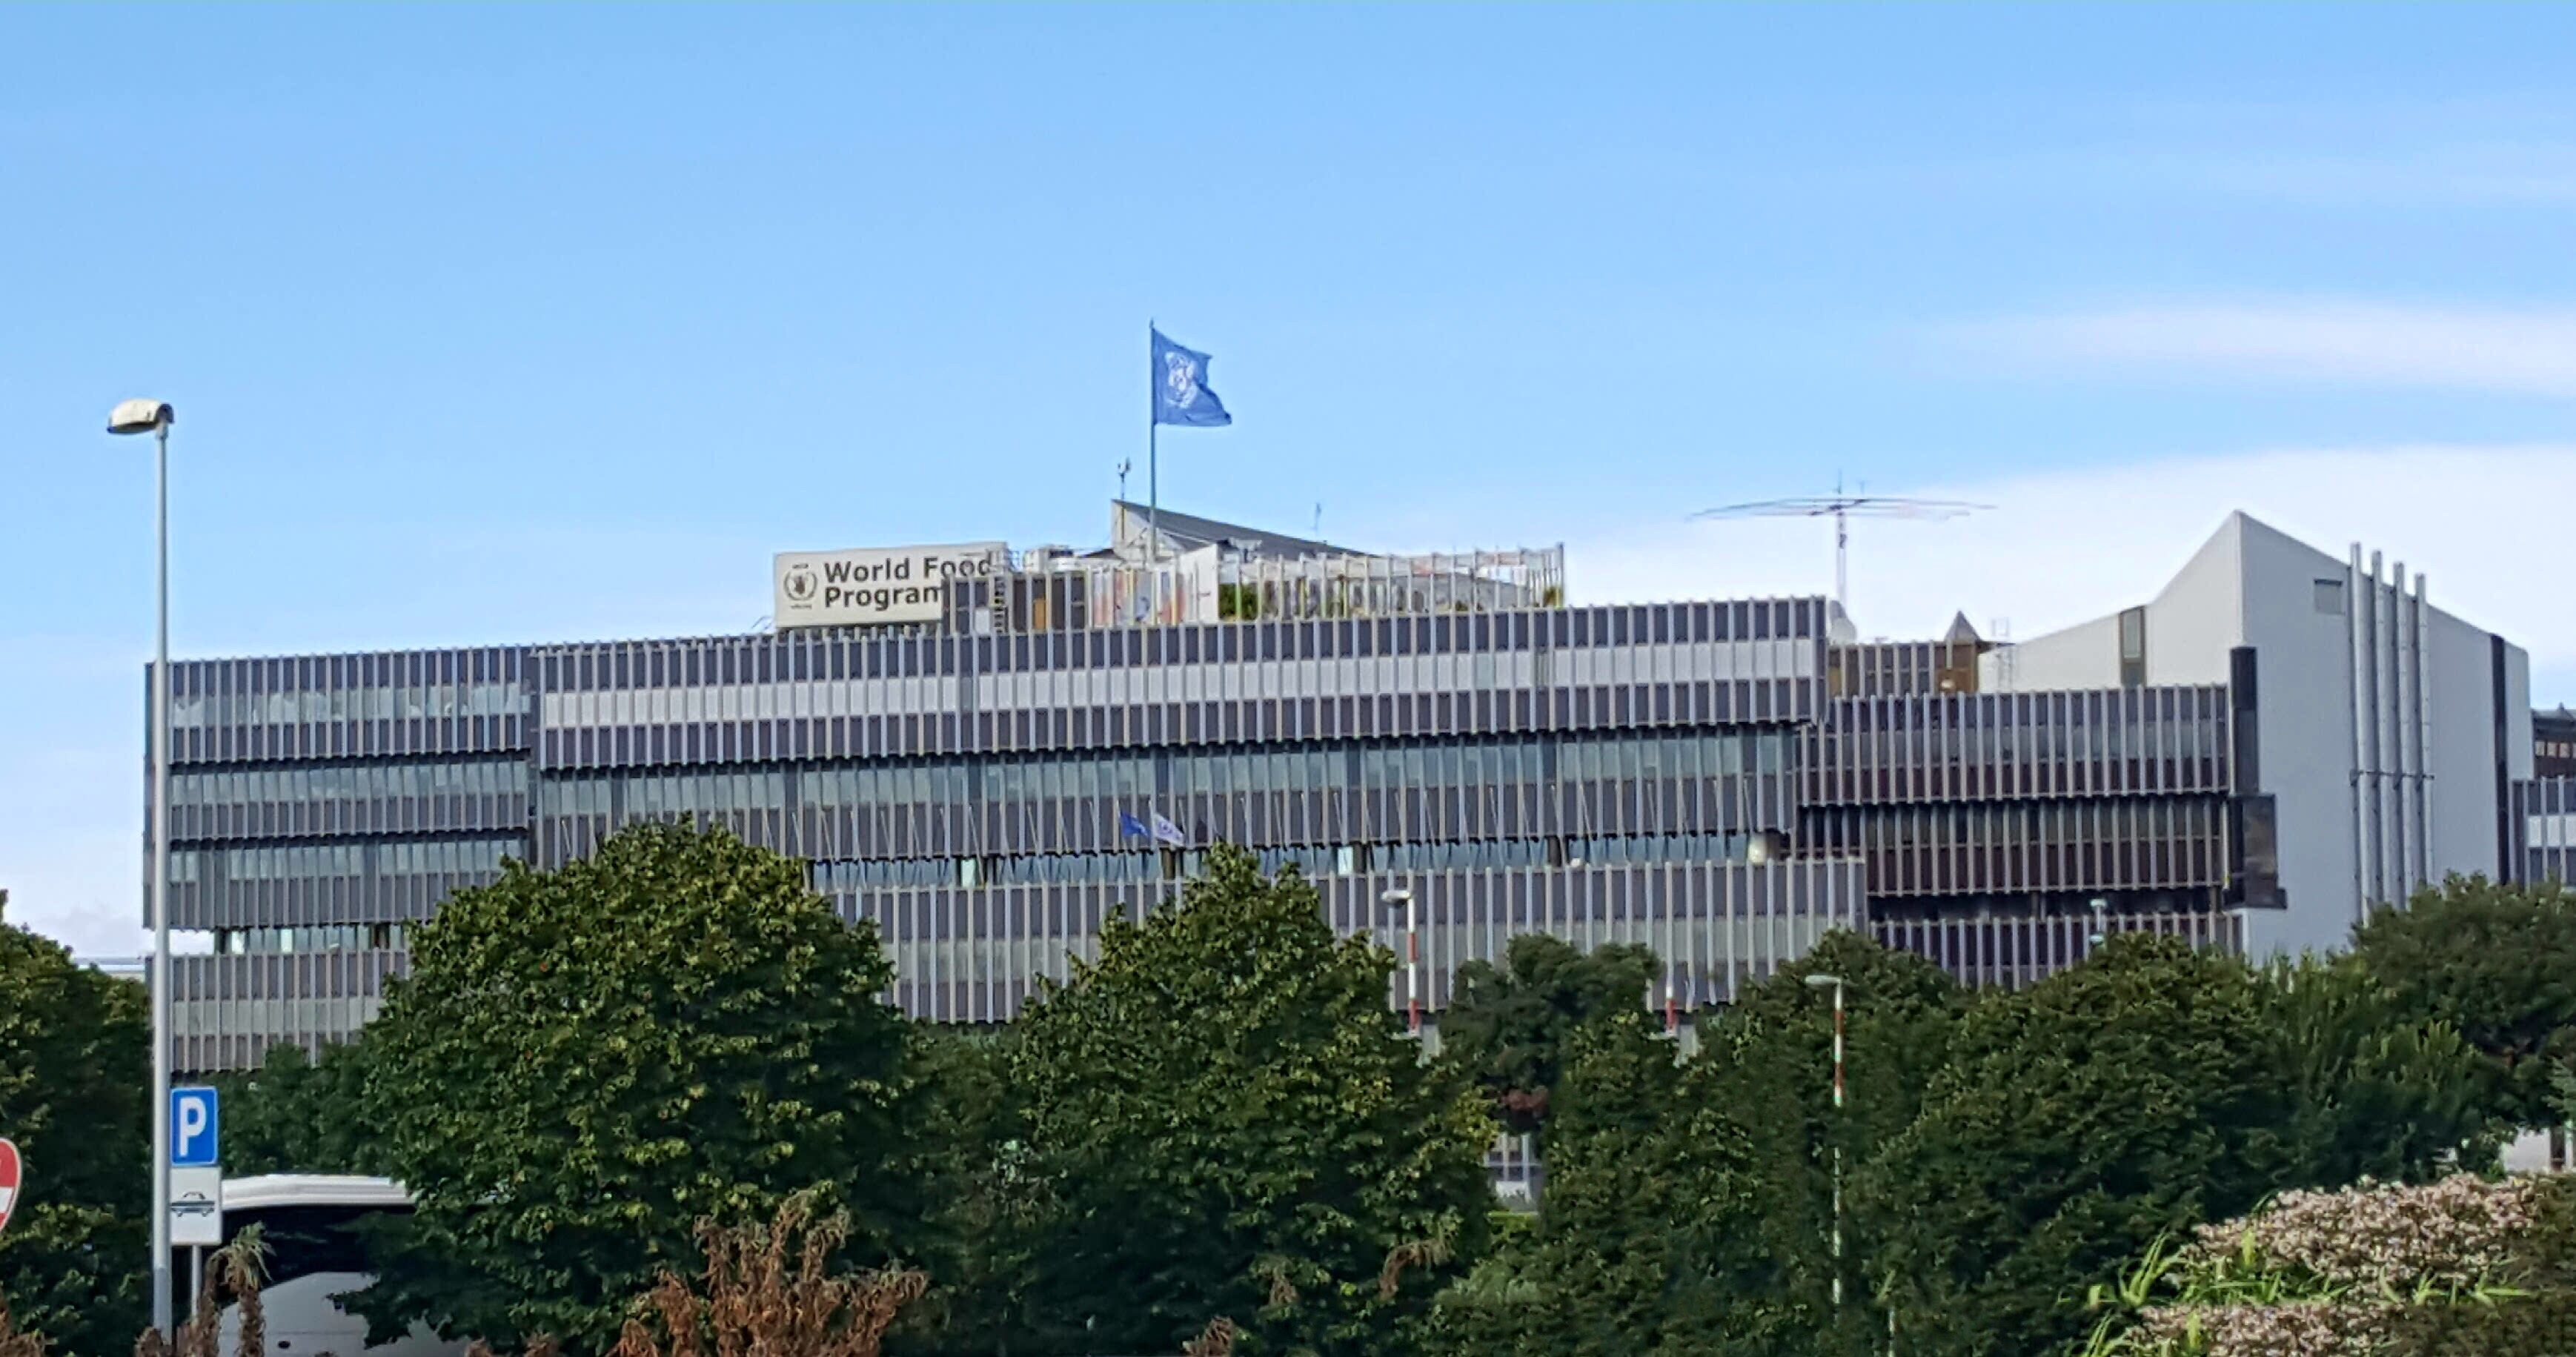 File:WFP Headquarters in Rome.jpg - Wikimedia Commons